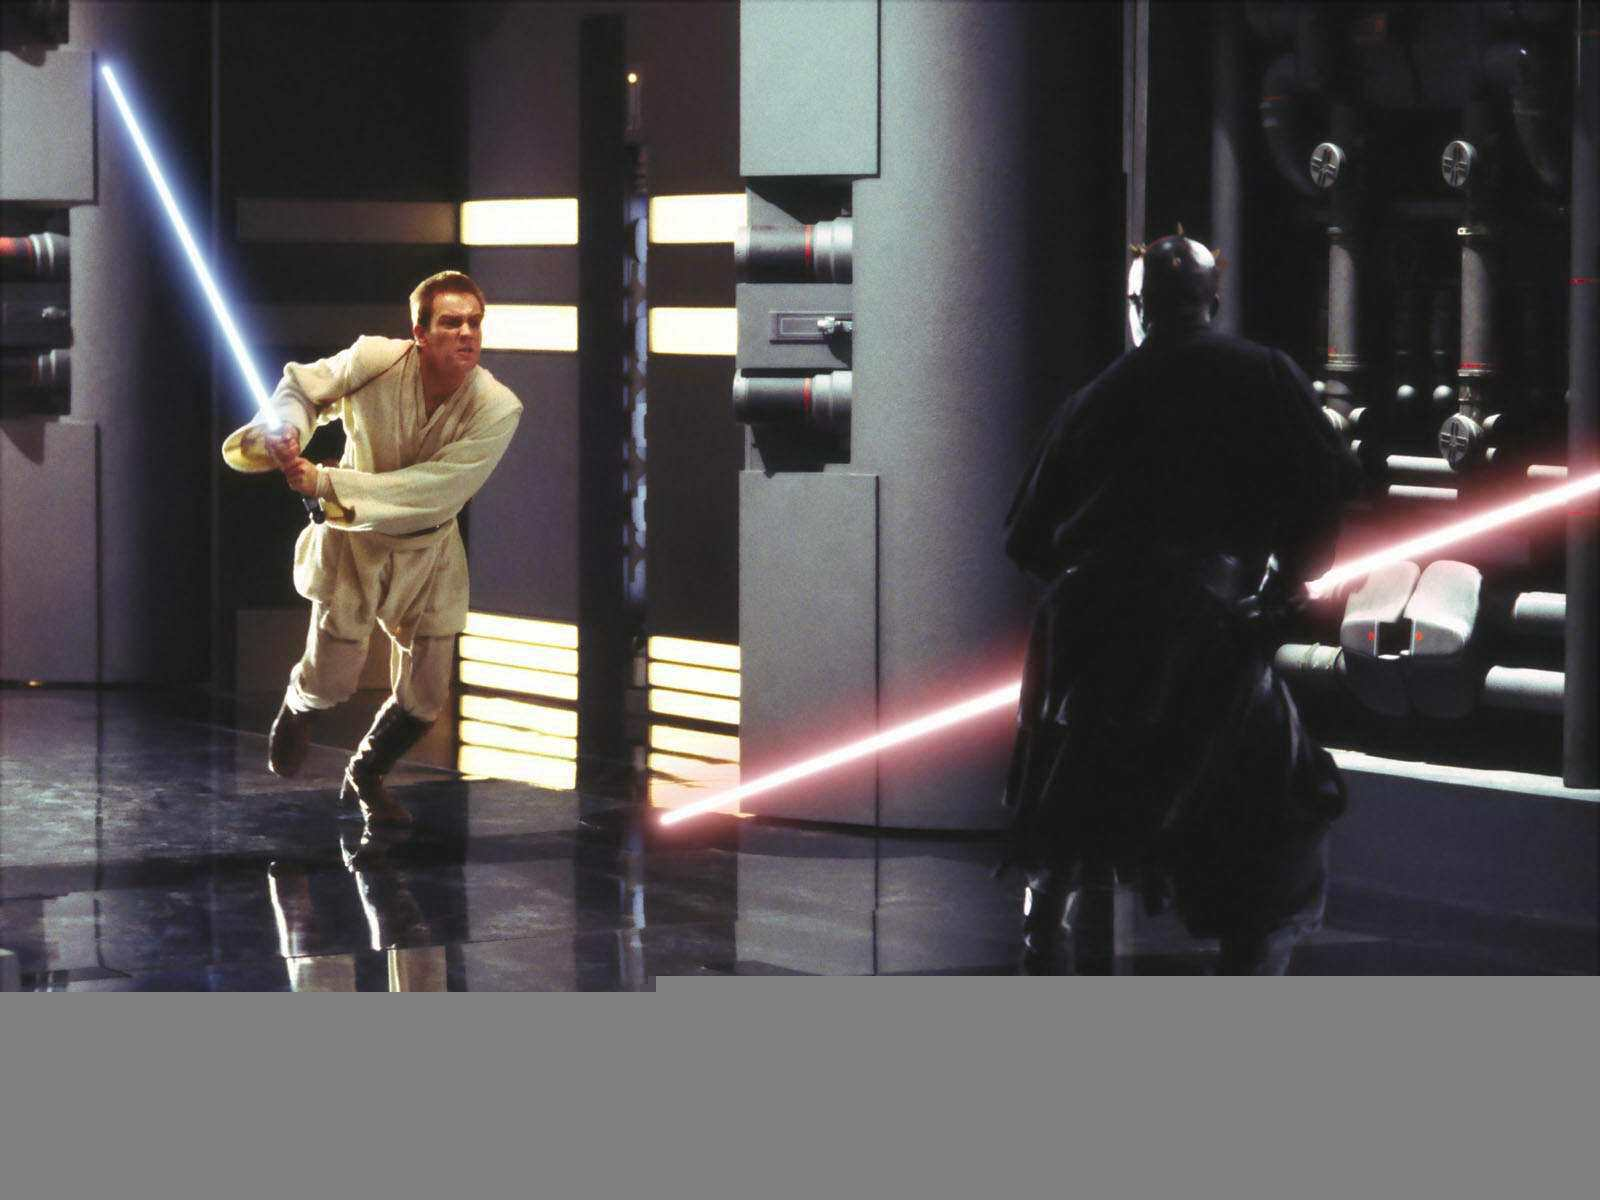 Darth Maul Vs Obi Wan Kenobi Wallpapers Wallpaper Cave